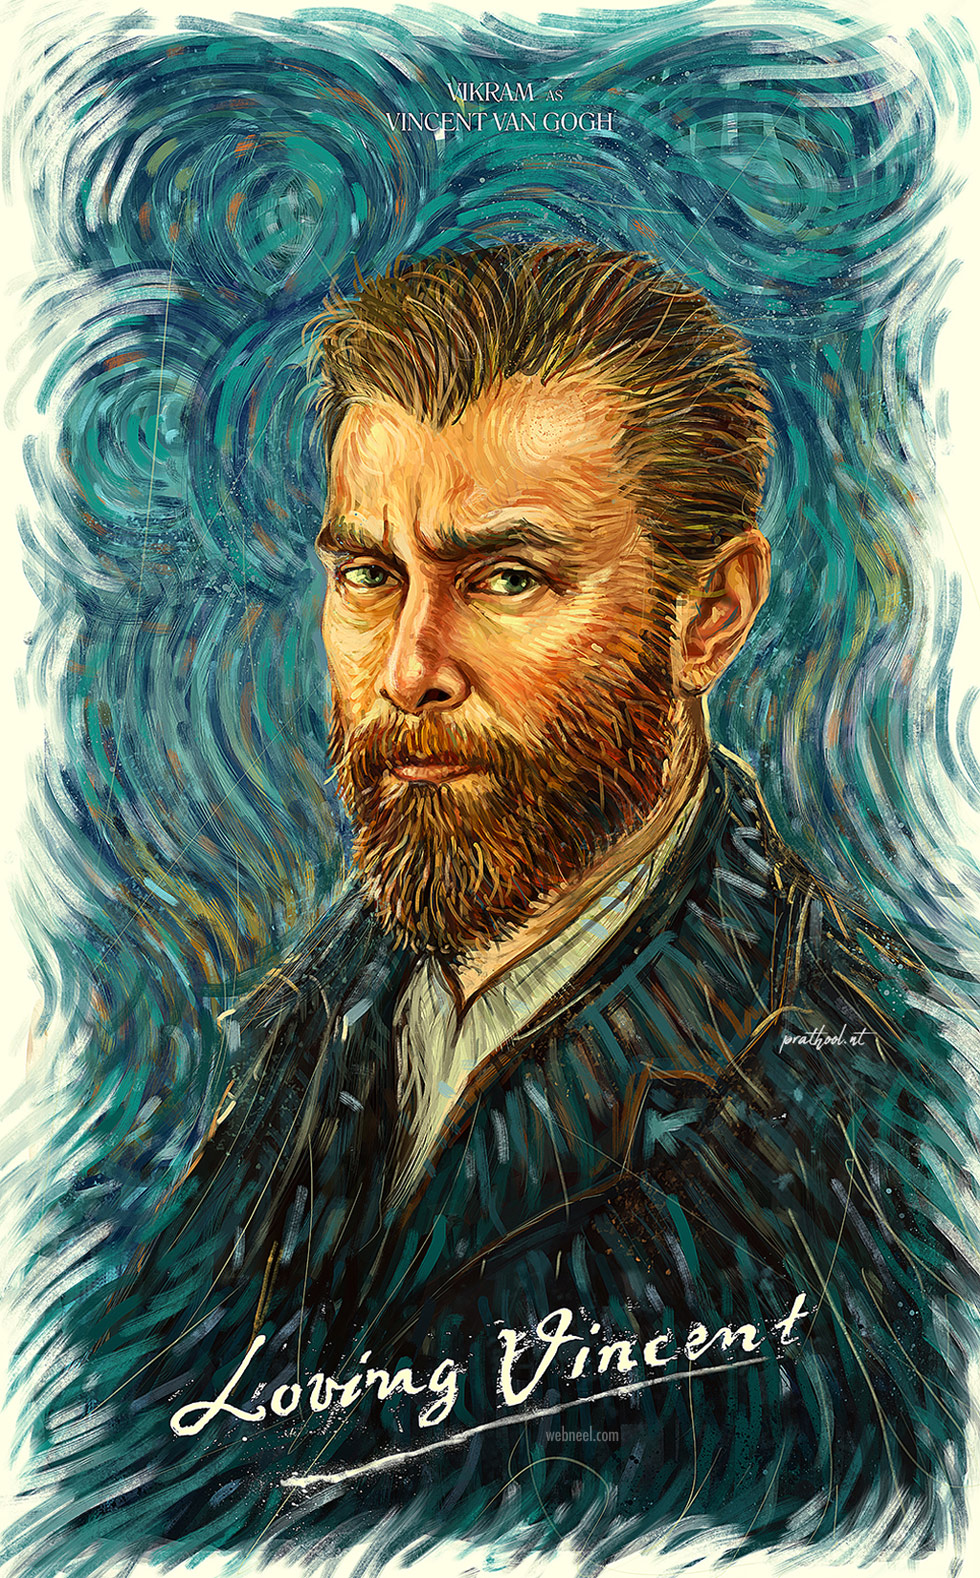 digital painting vikram as van gogh by prathoolnt